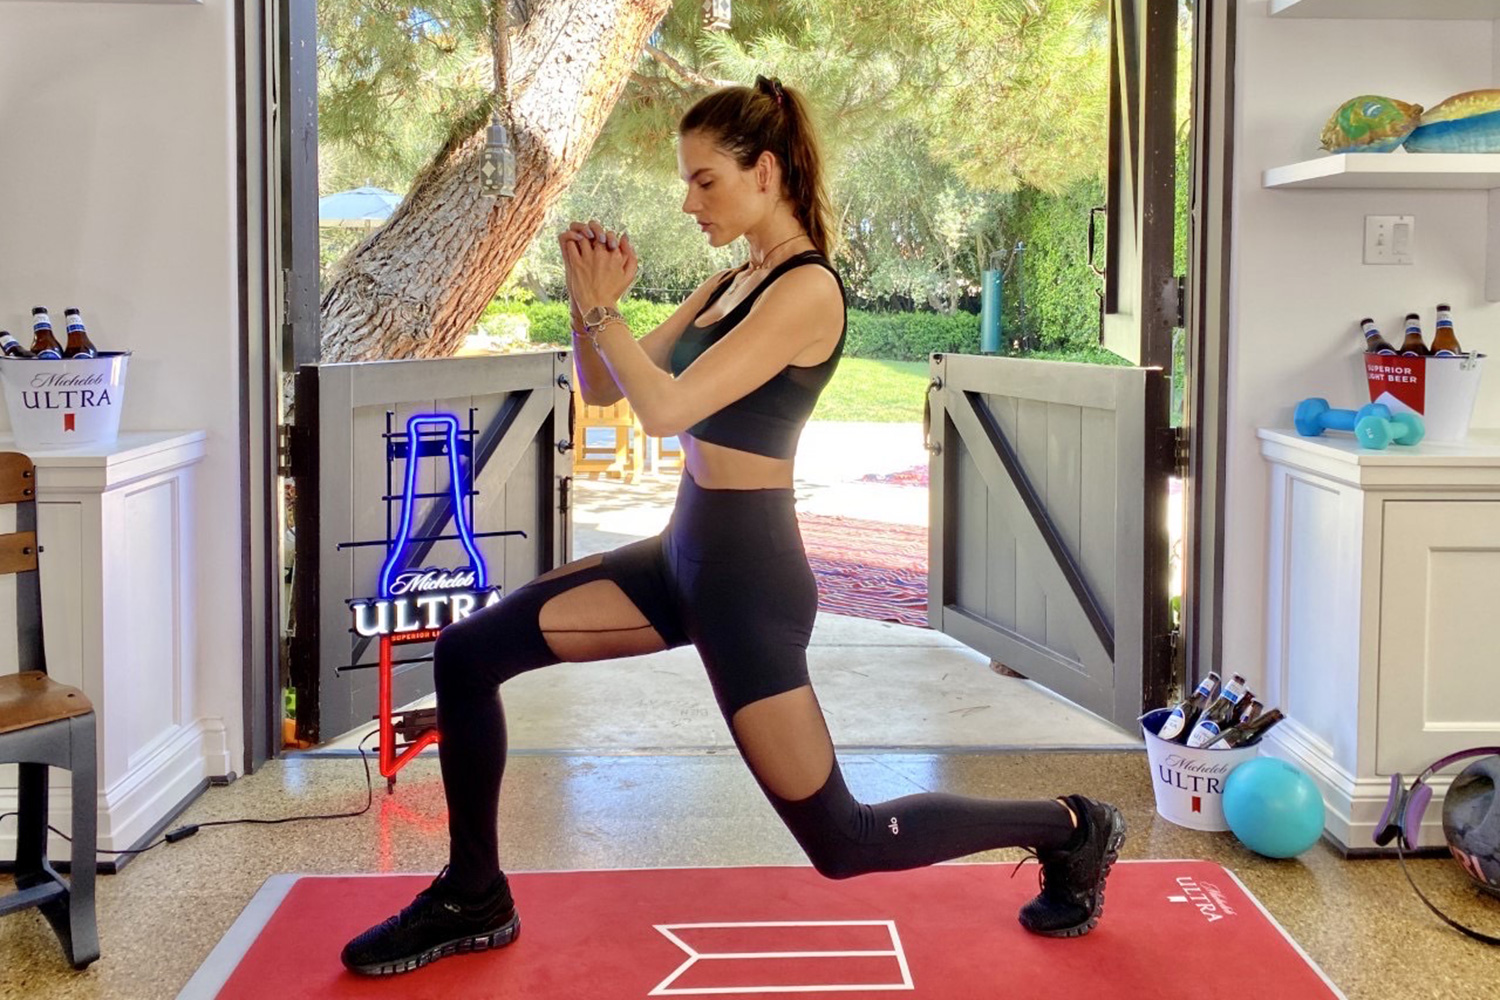 Alessandra Ambrósio works out from home while supporting local gym owners and trainers during Michelob ULTRA's livestream workout series